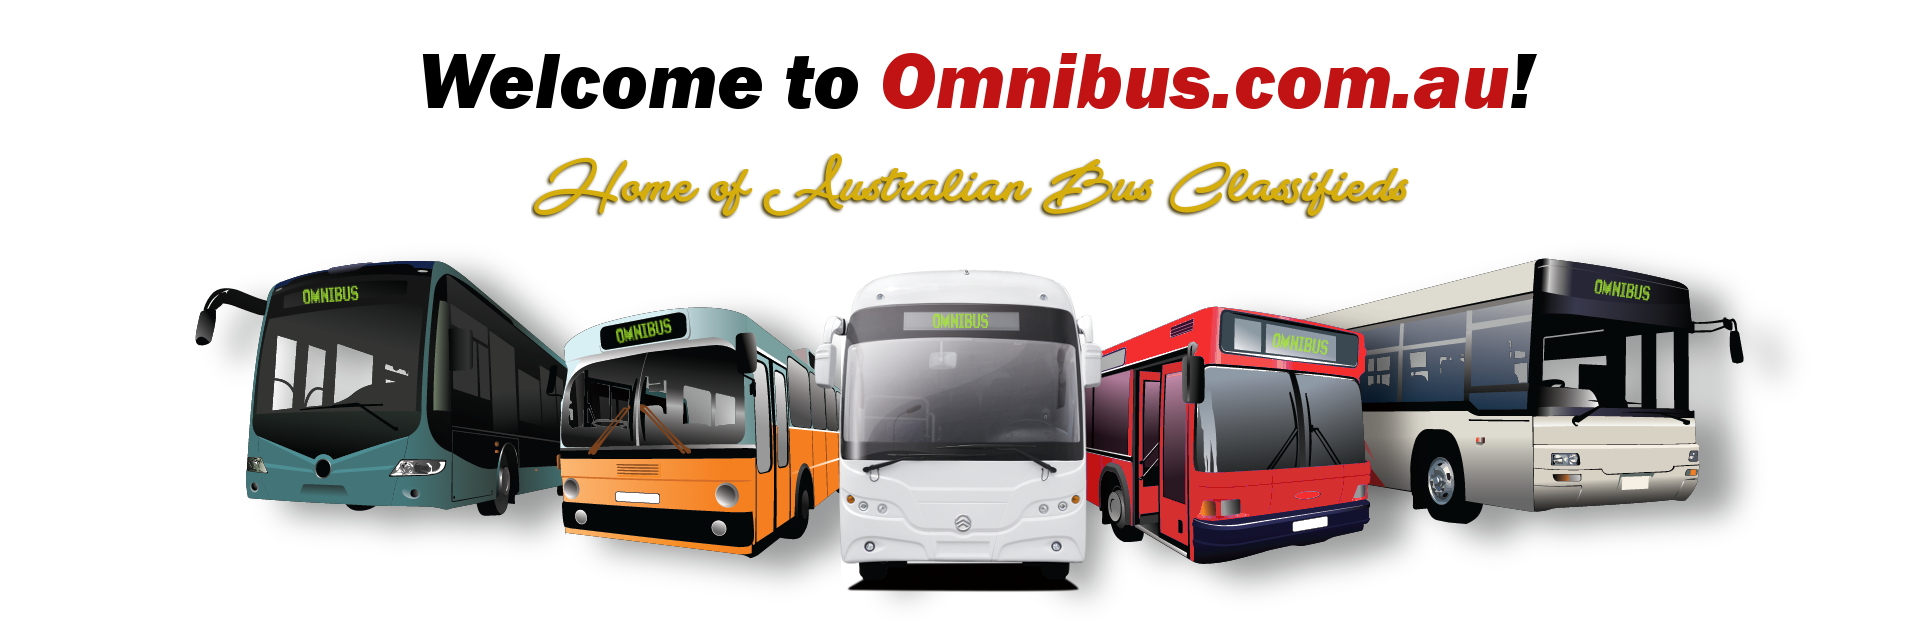 Omnibus_welcome